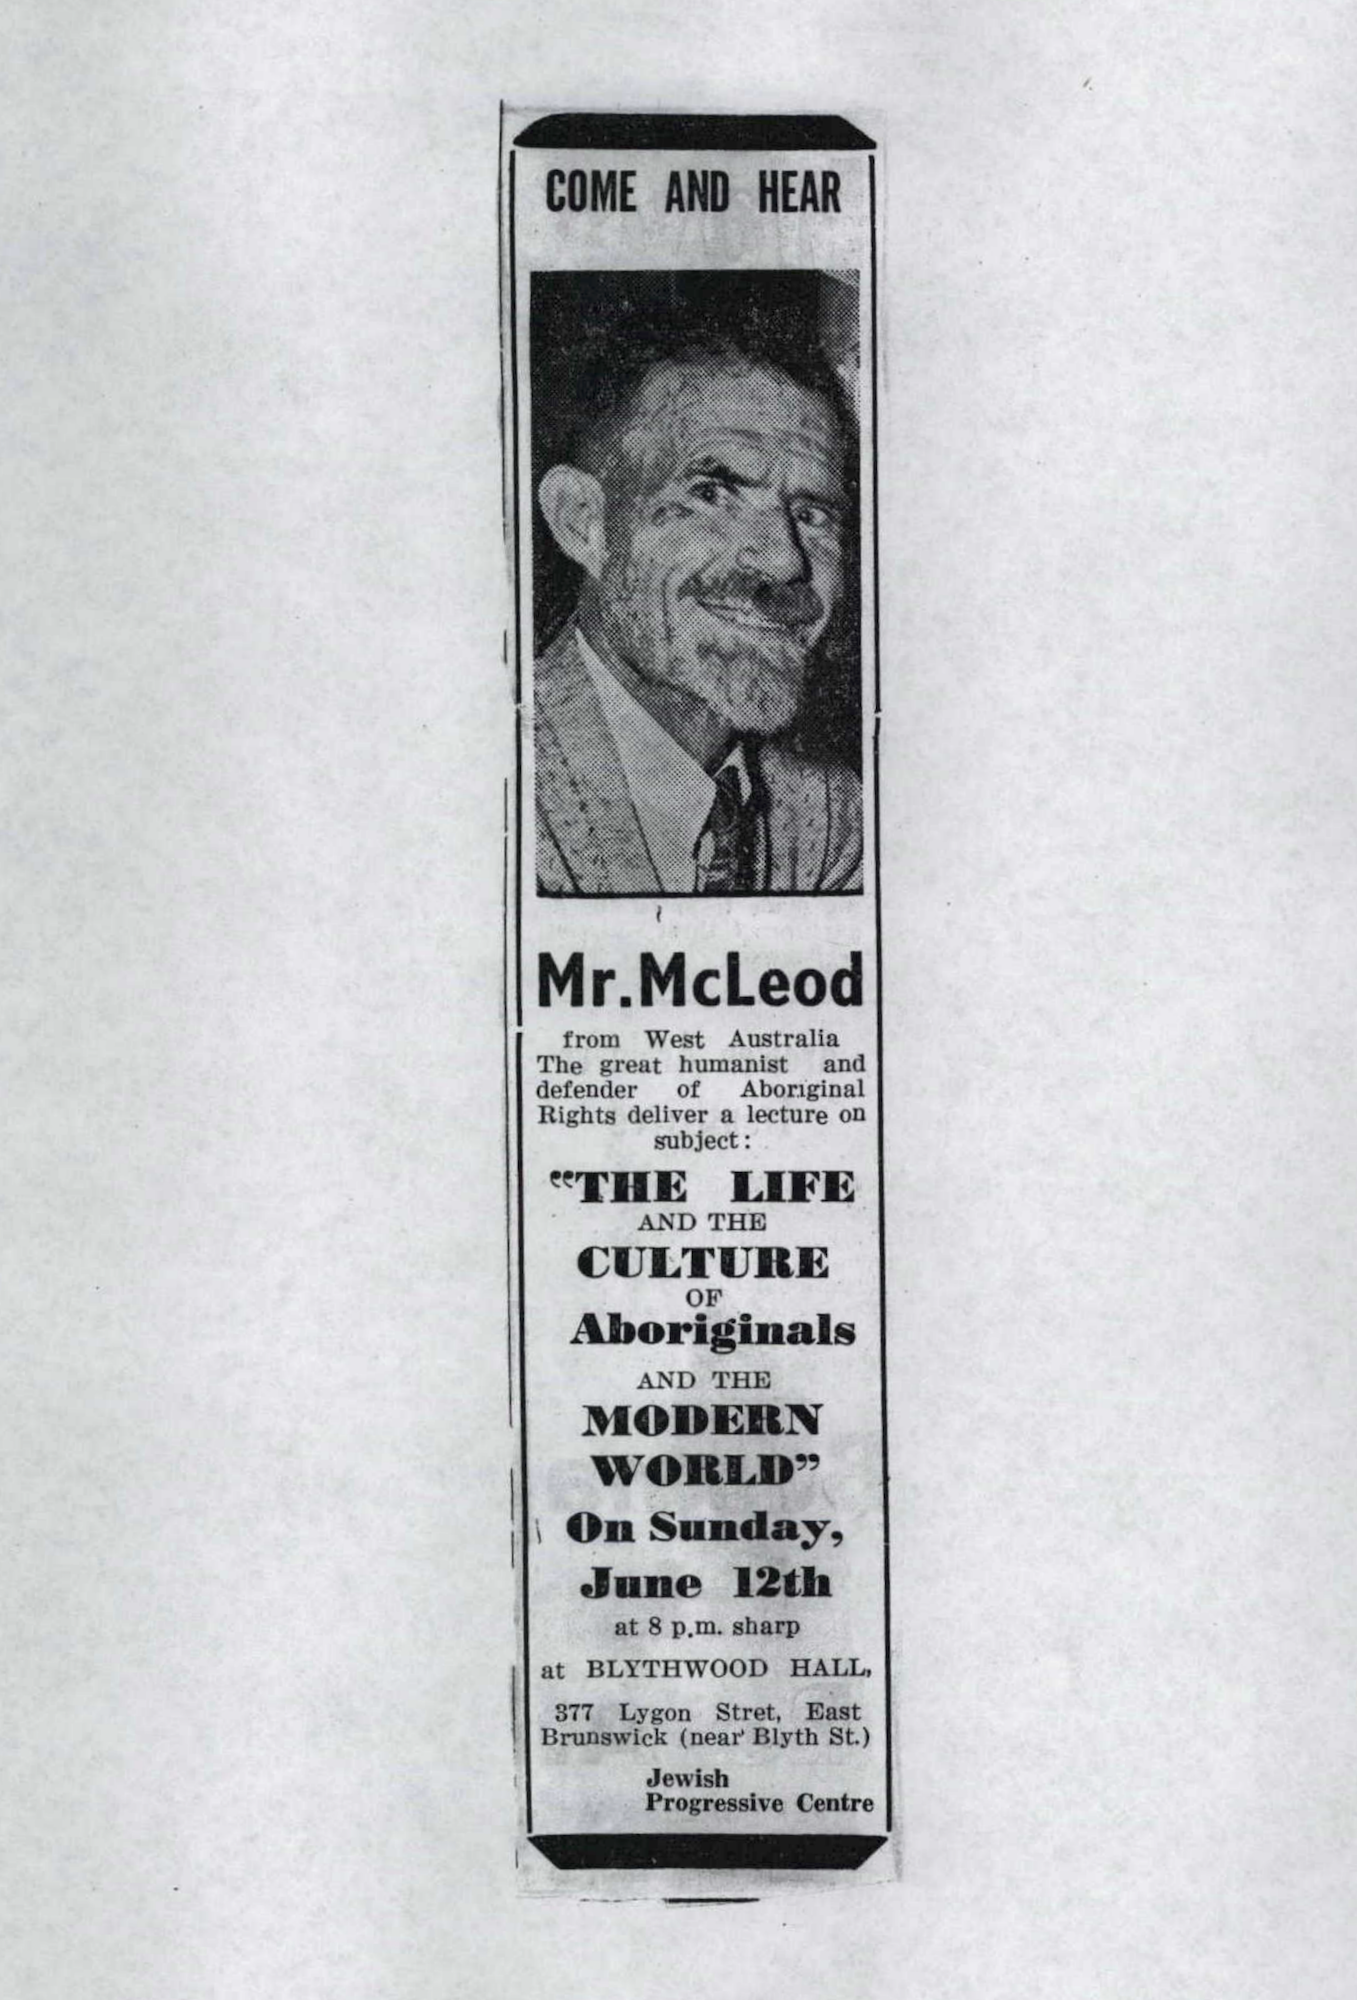 Unsourced newspaper cutting, Don McLeod ASIO, National Archives of Australia